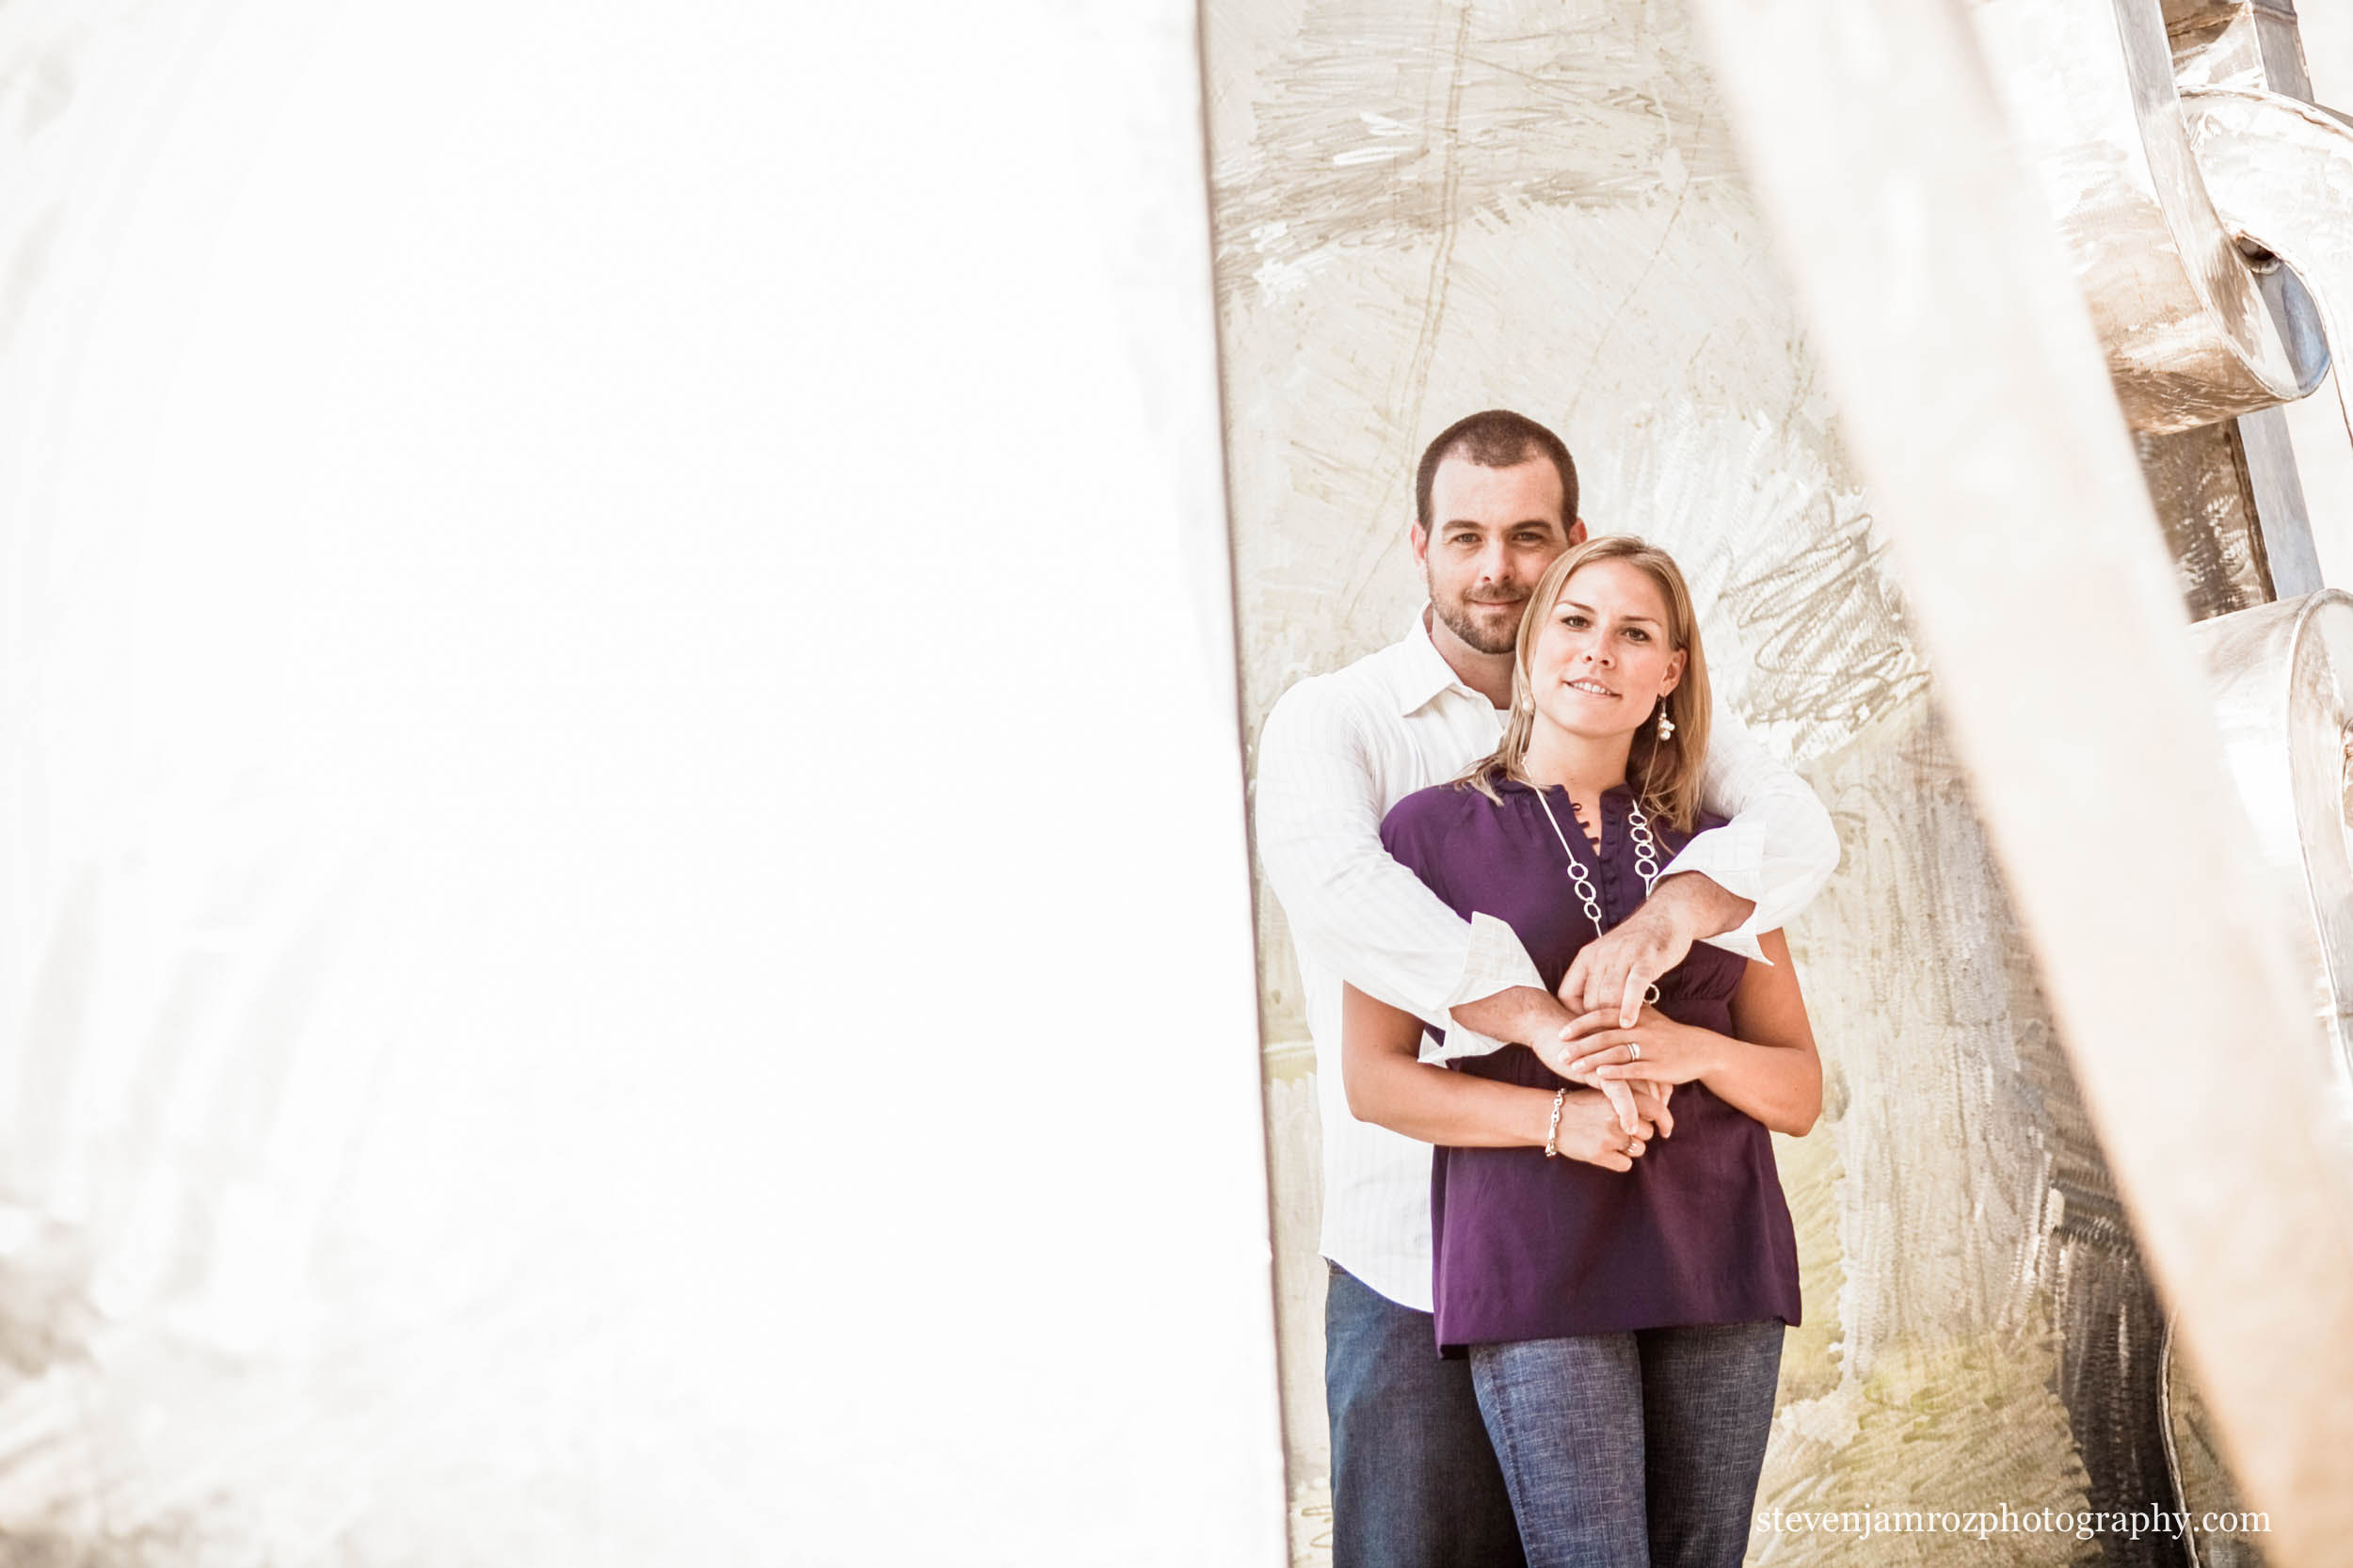 downtown-raleigh-engagement-photos-steven-jamroz.jpg